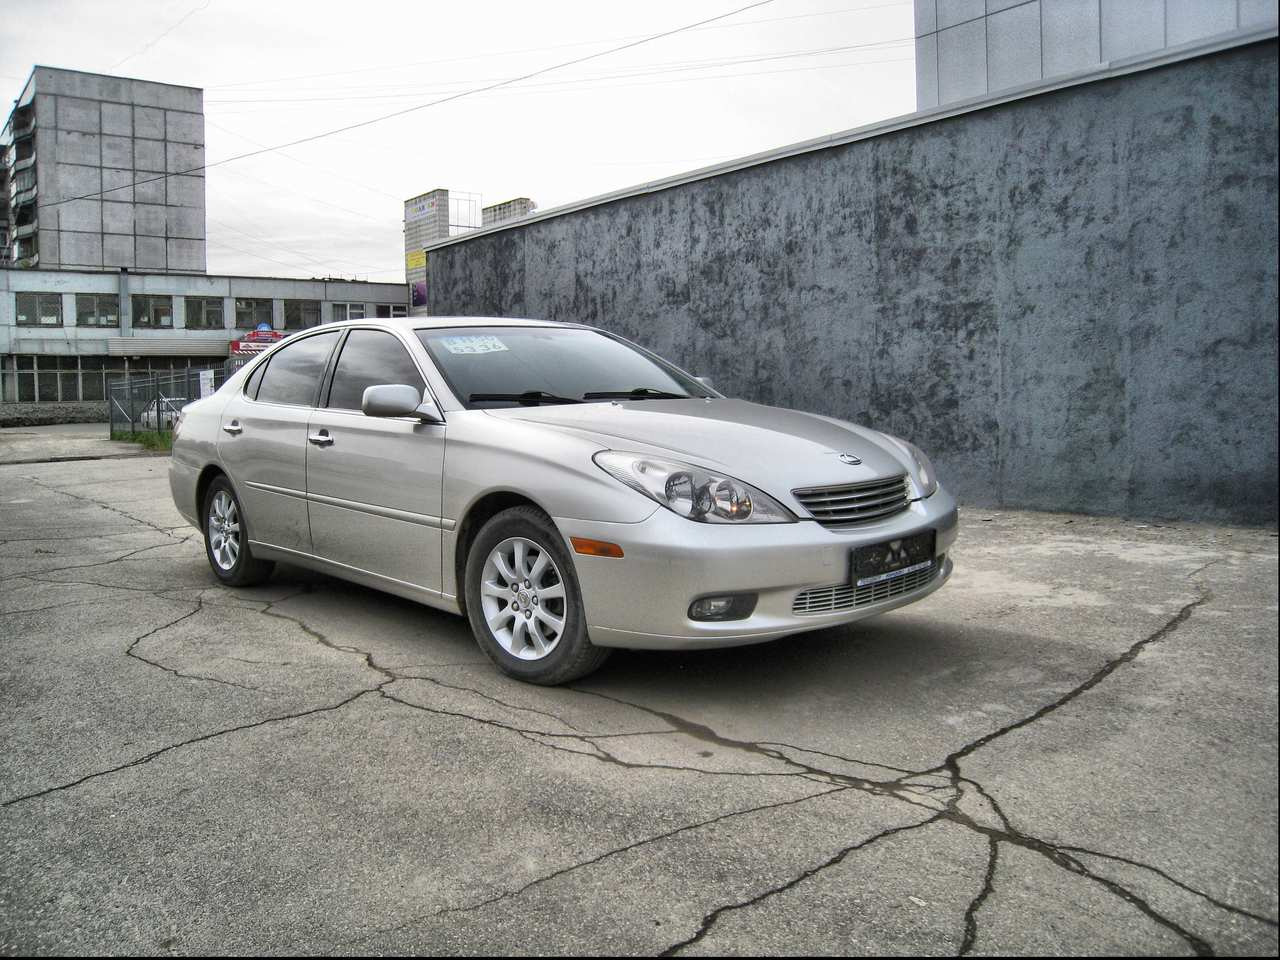 2001 lexus es300 pictures 3000cc gasoline ff automatic for sale. Black Bedroom Furniture Sets. Home Design Ideas